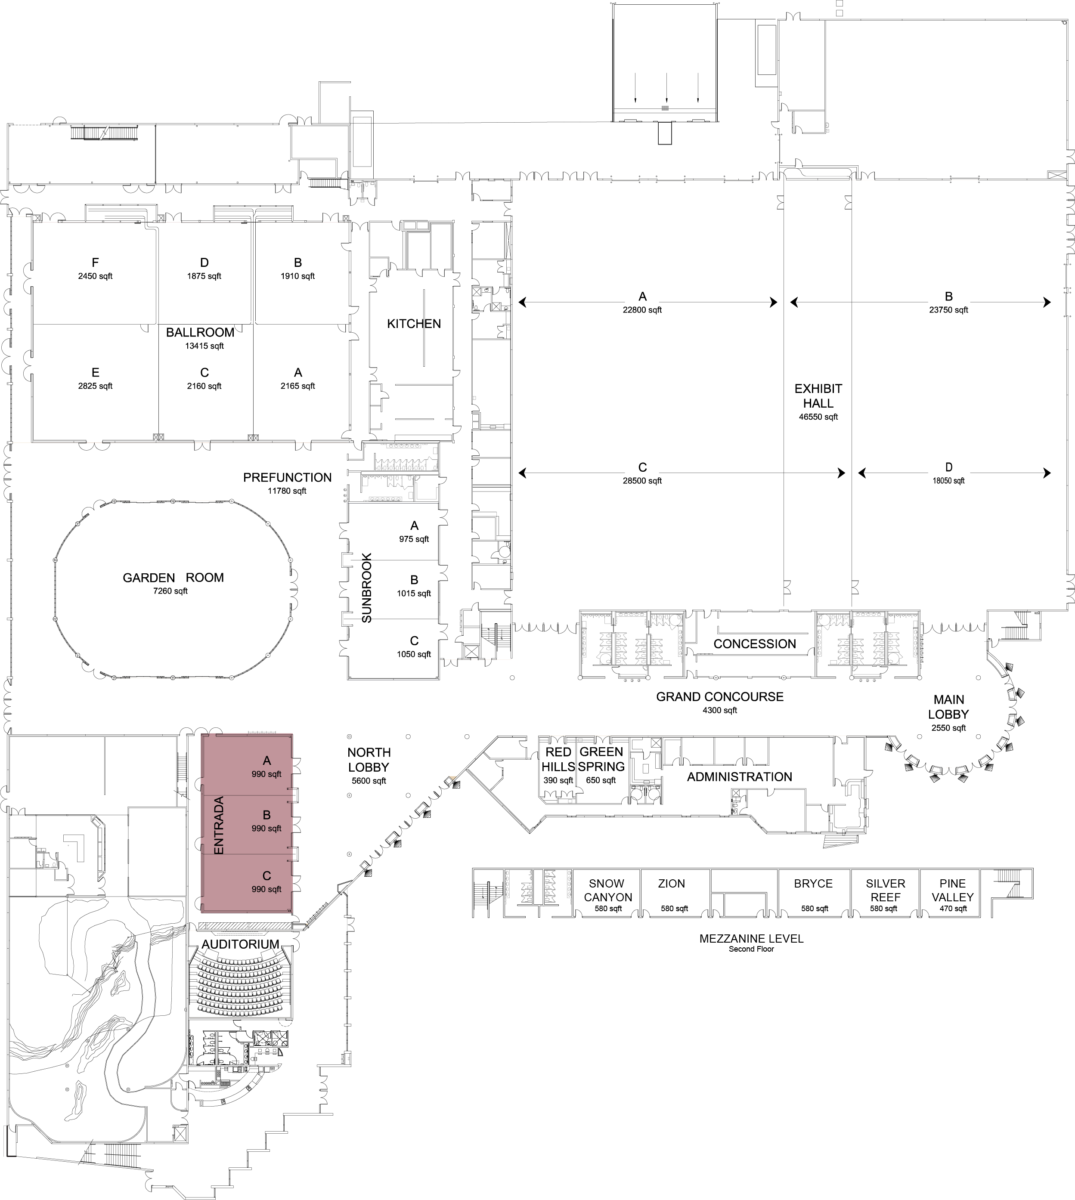 Floorplan of convention center with entrada highlighted